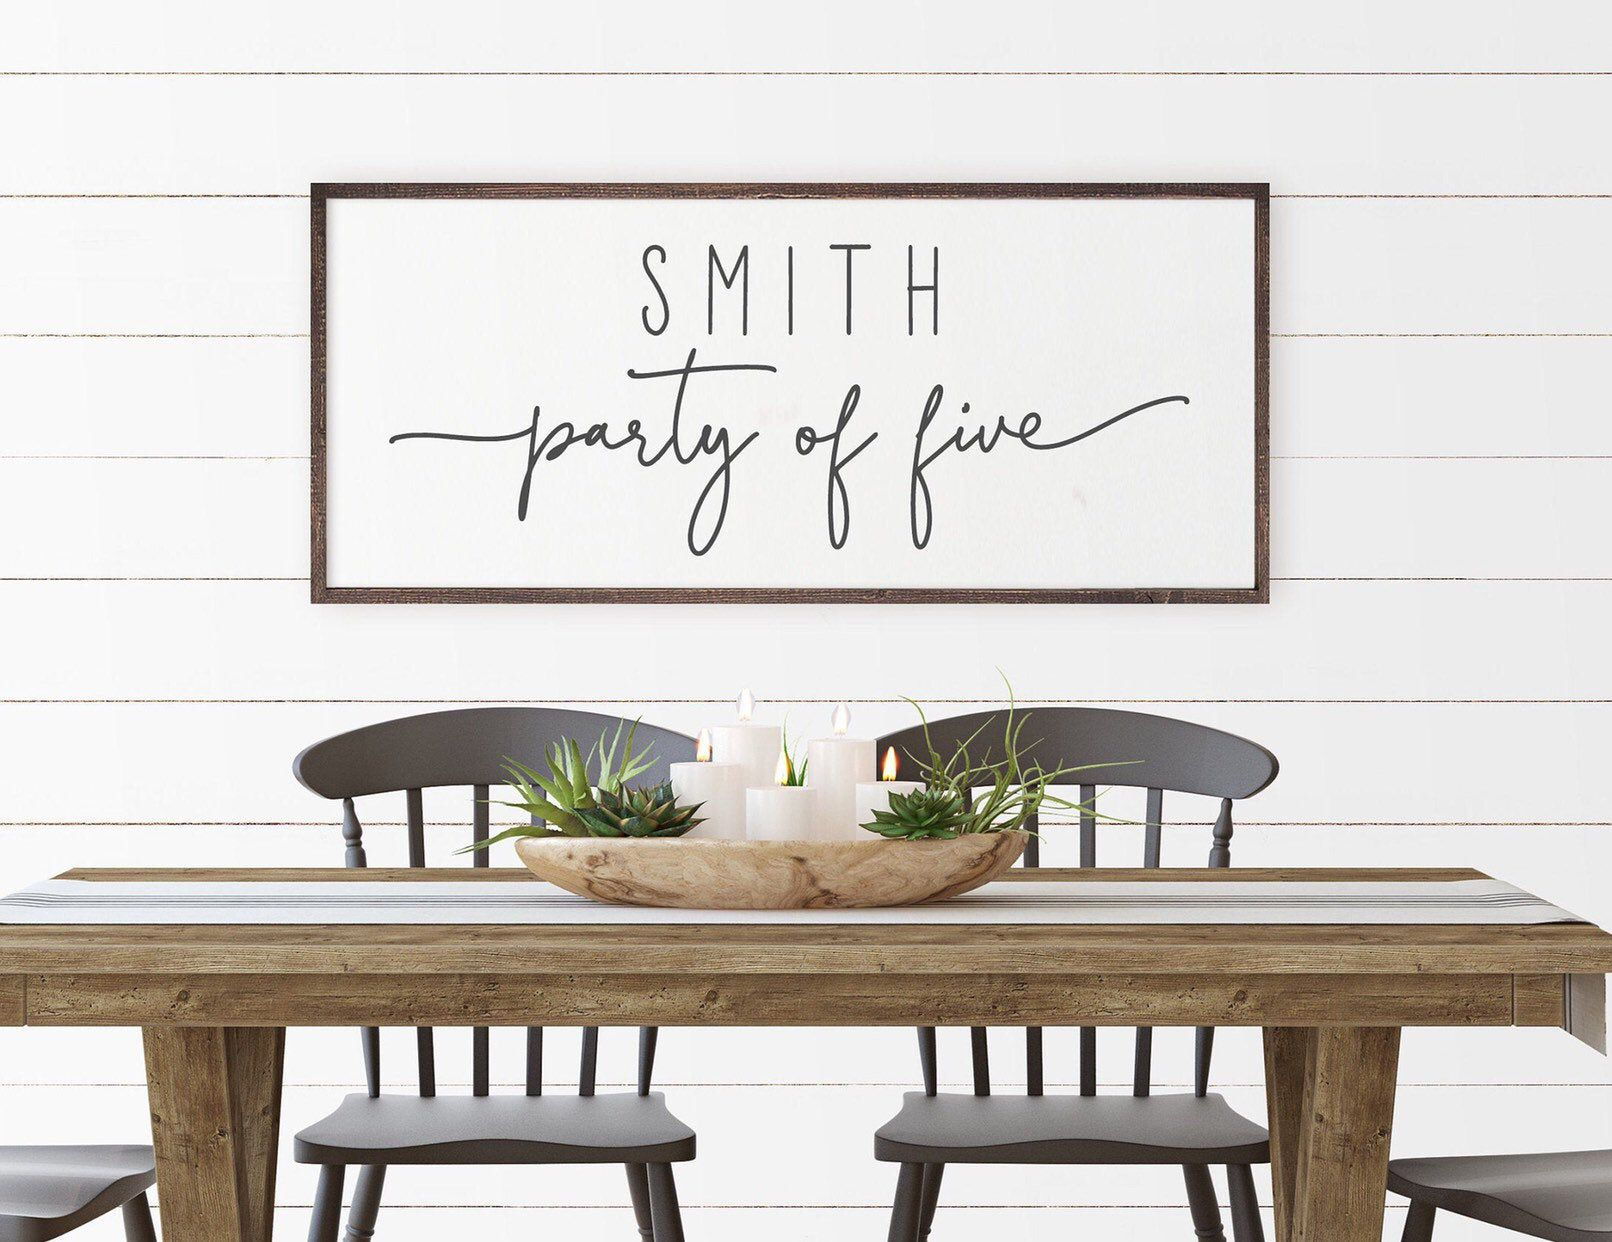 Last Name Personalized Wood Sign Party Of 3 4 5 6 7 8 Entry Etsy In 2021 Dining Room Wall Art Dining Room Wall Decor Dining Wall Decor